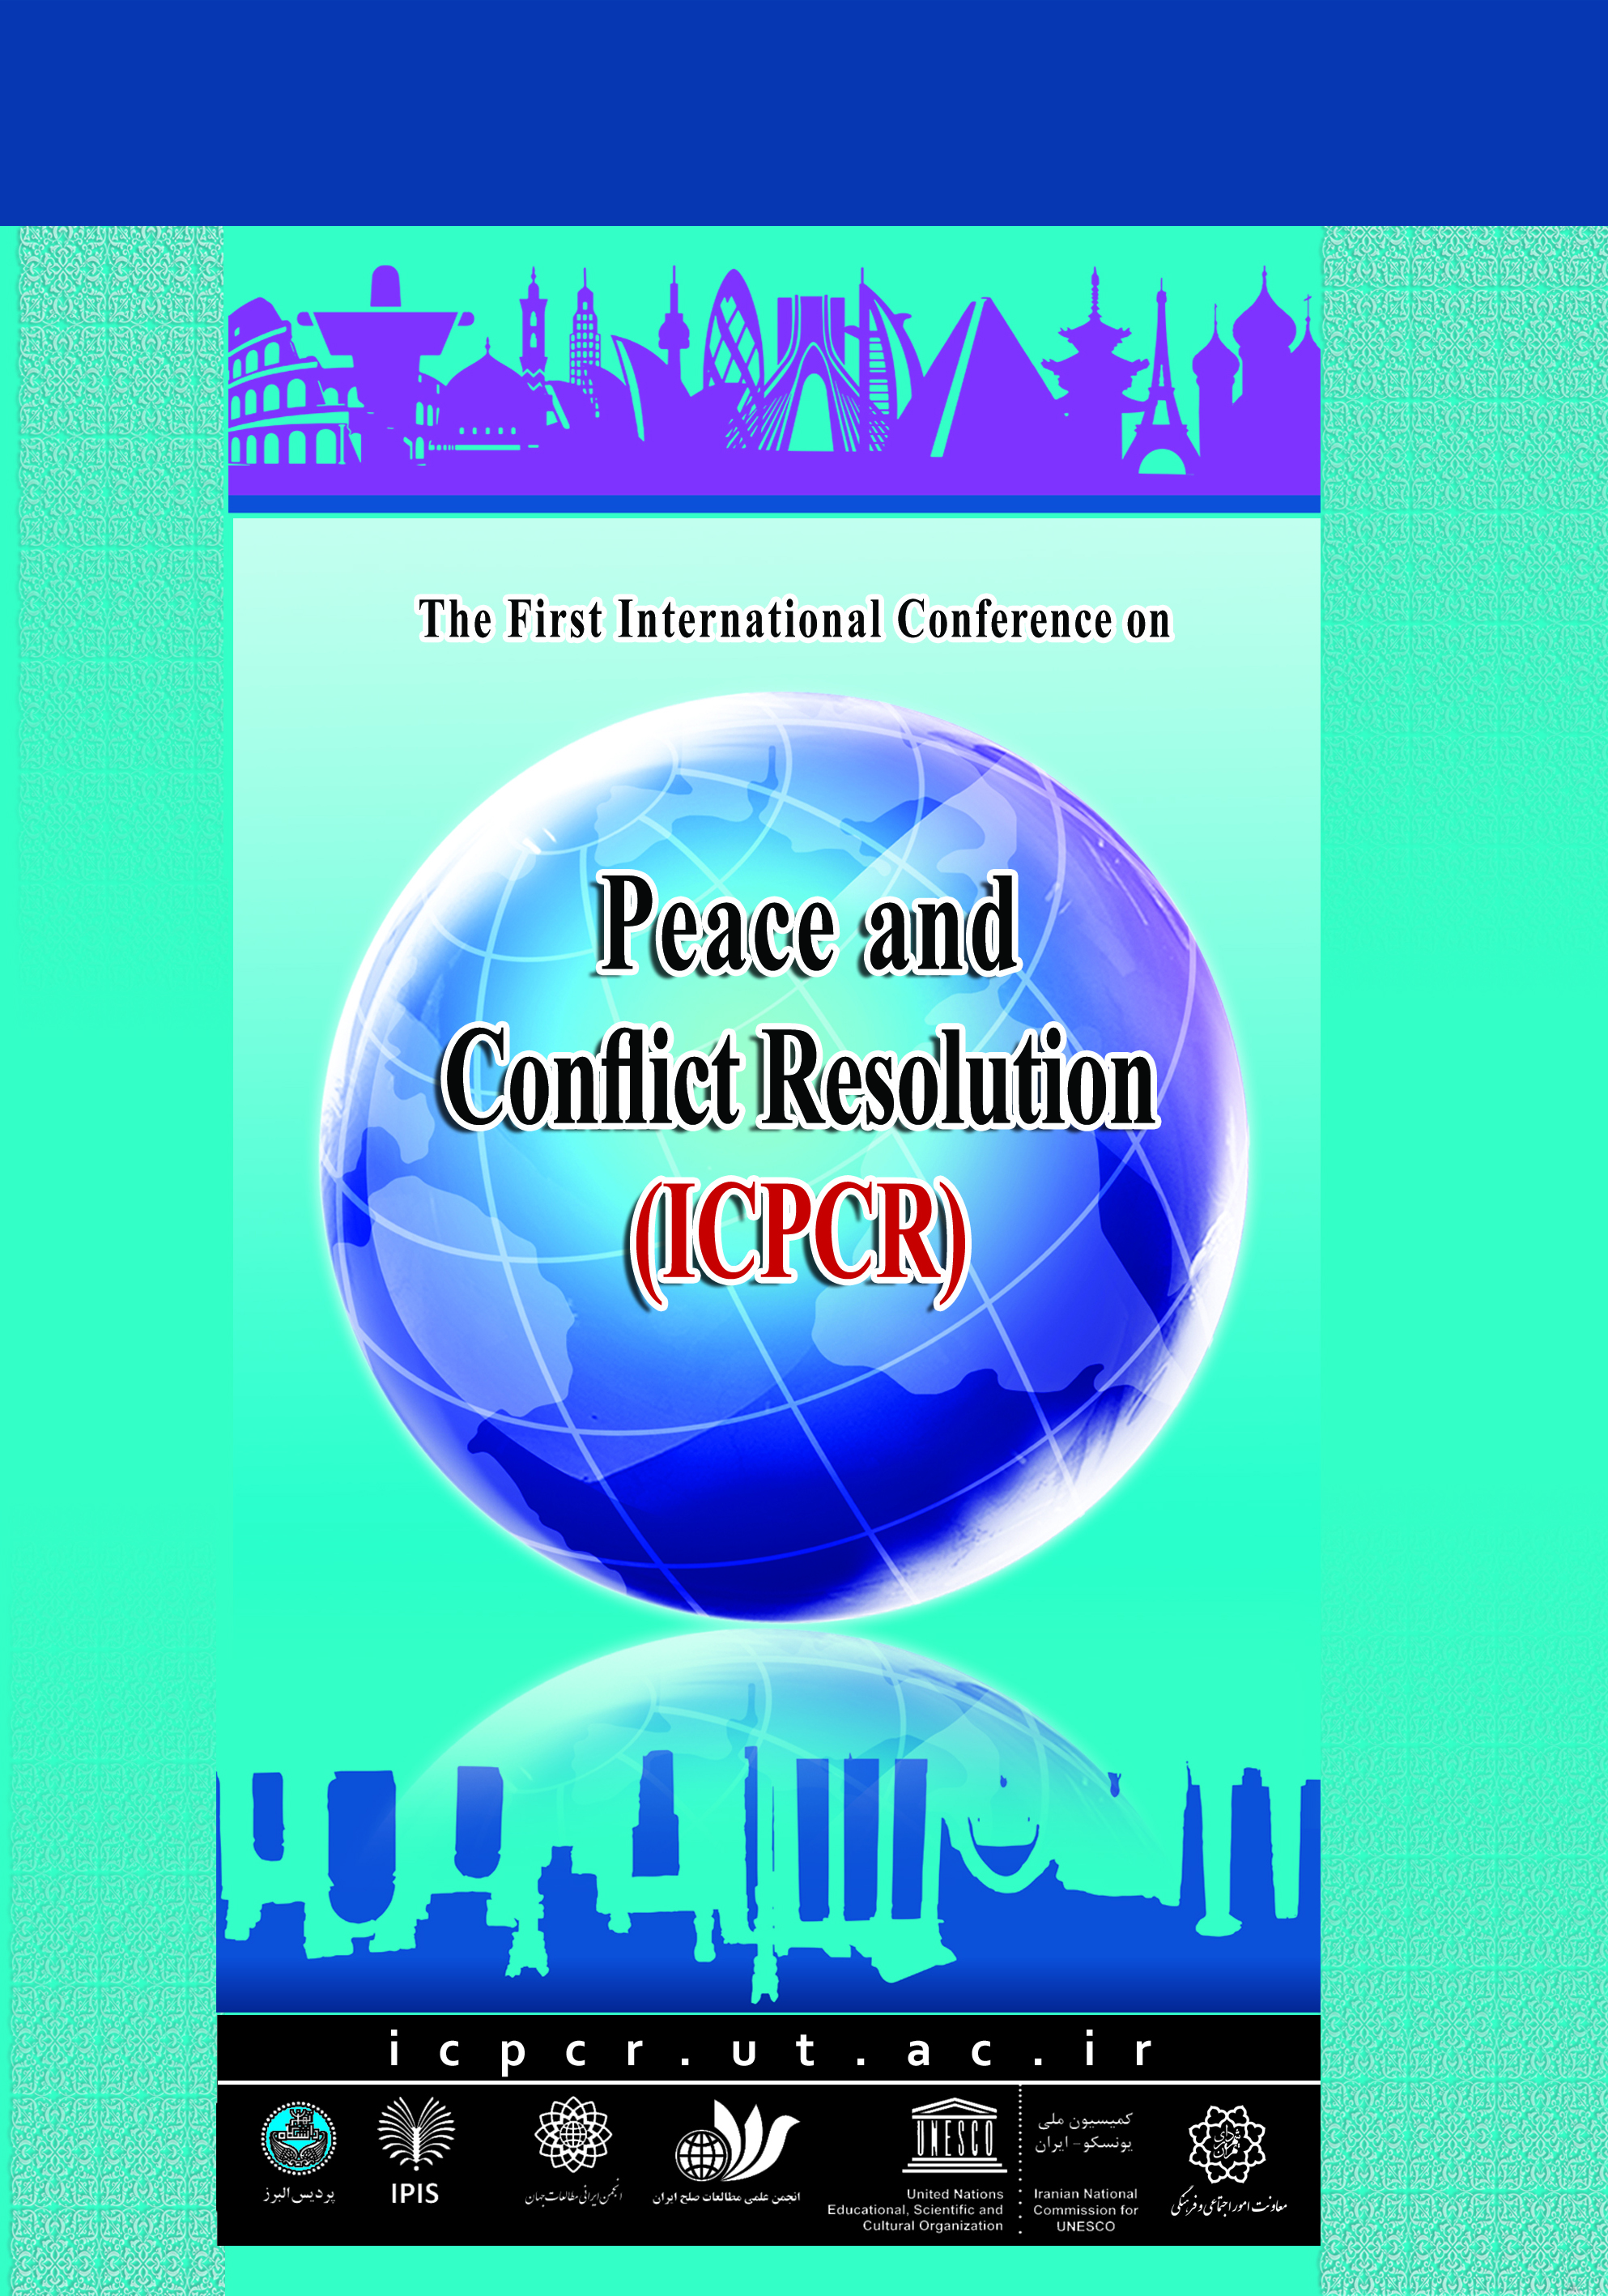 Abstract of the 1st International Conference on Peace and Conflict